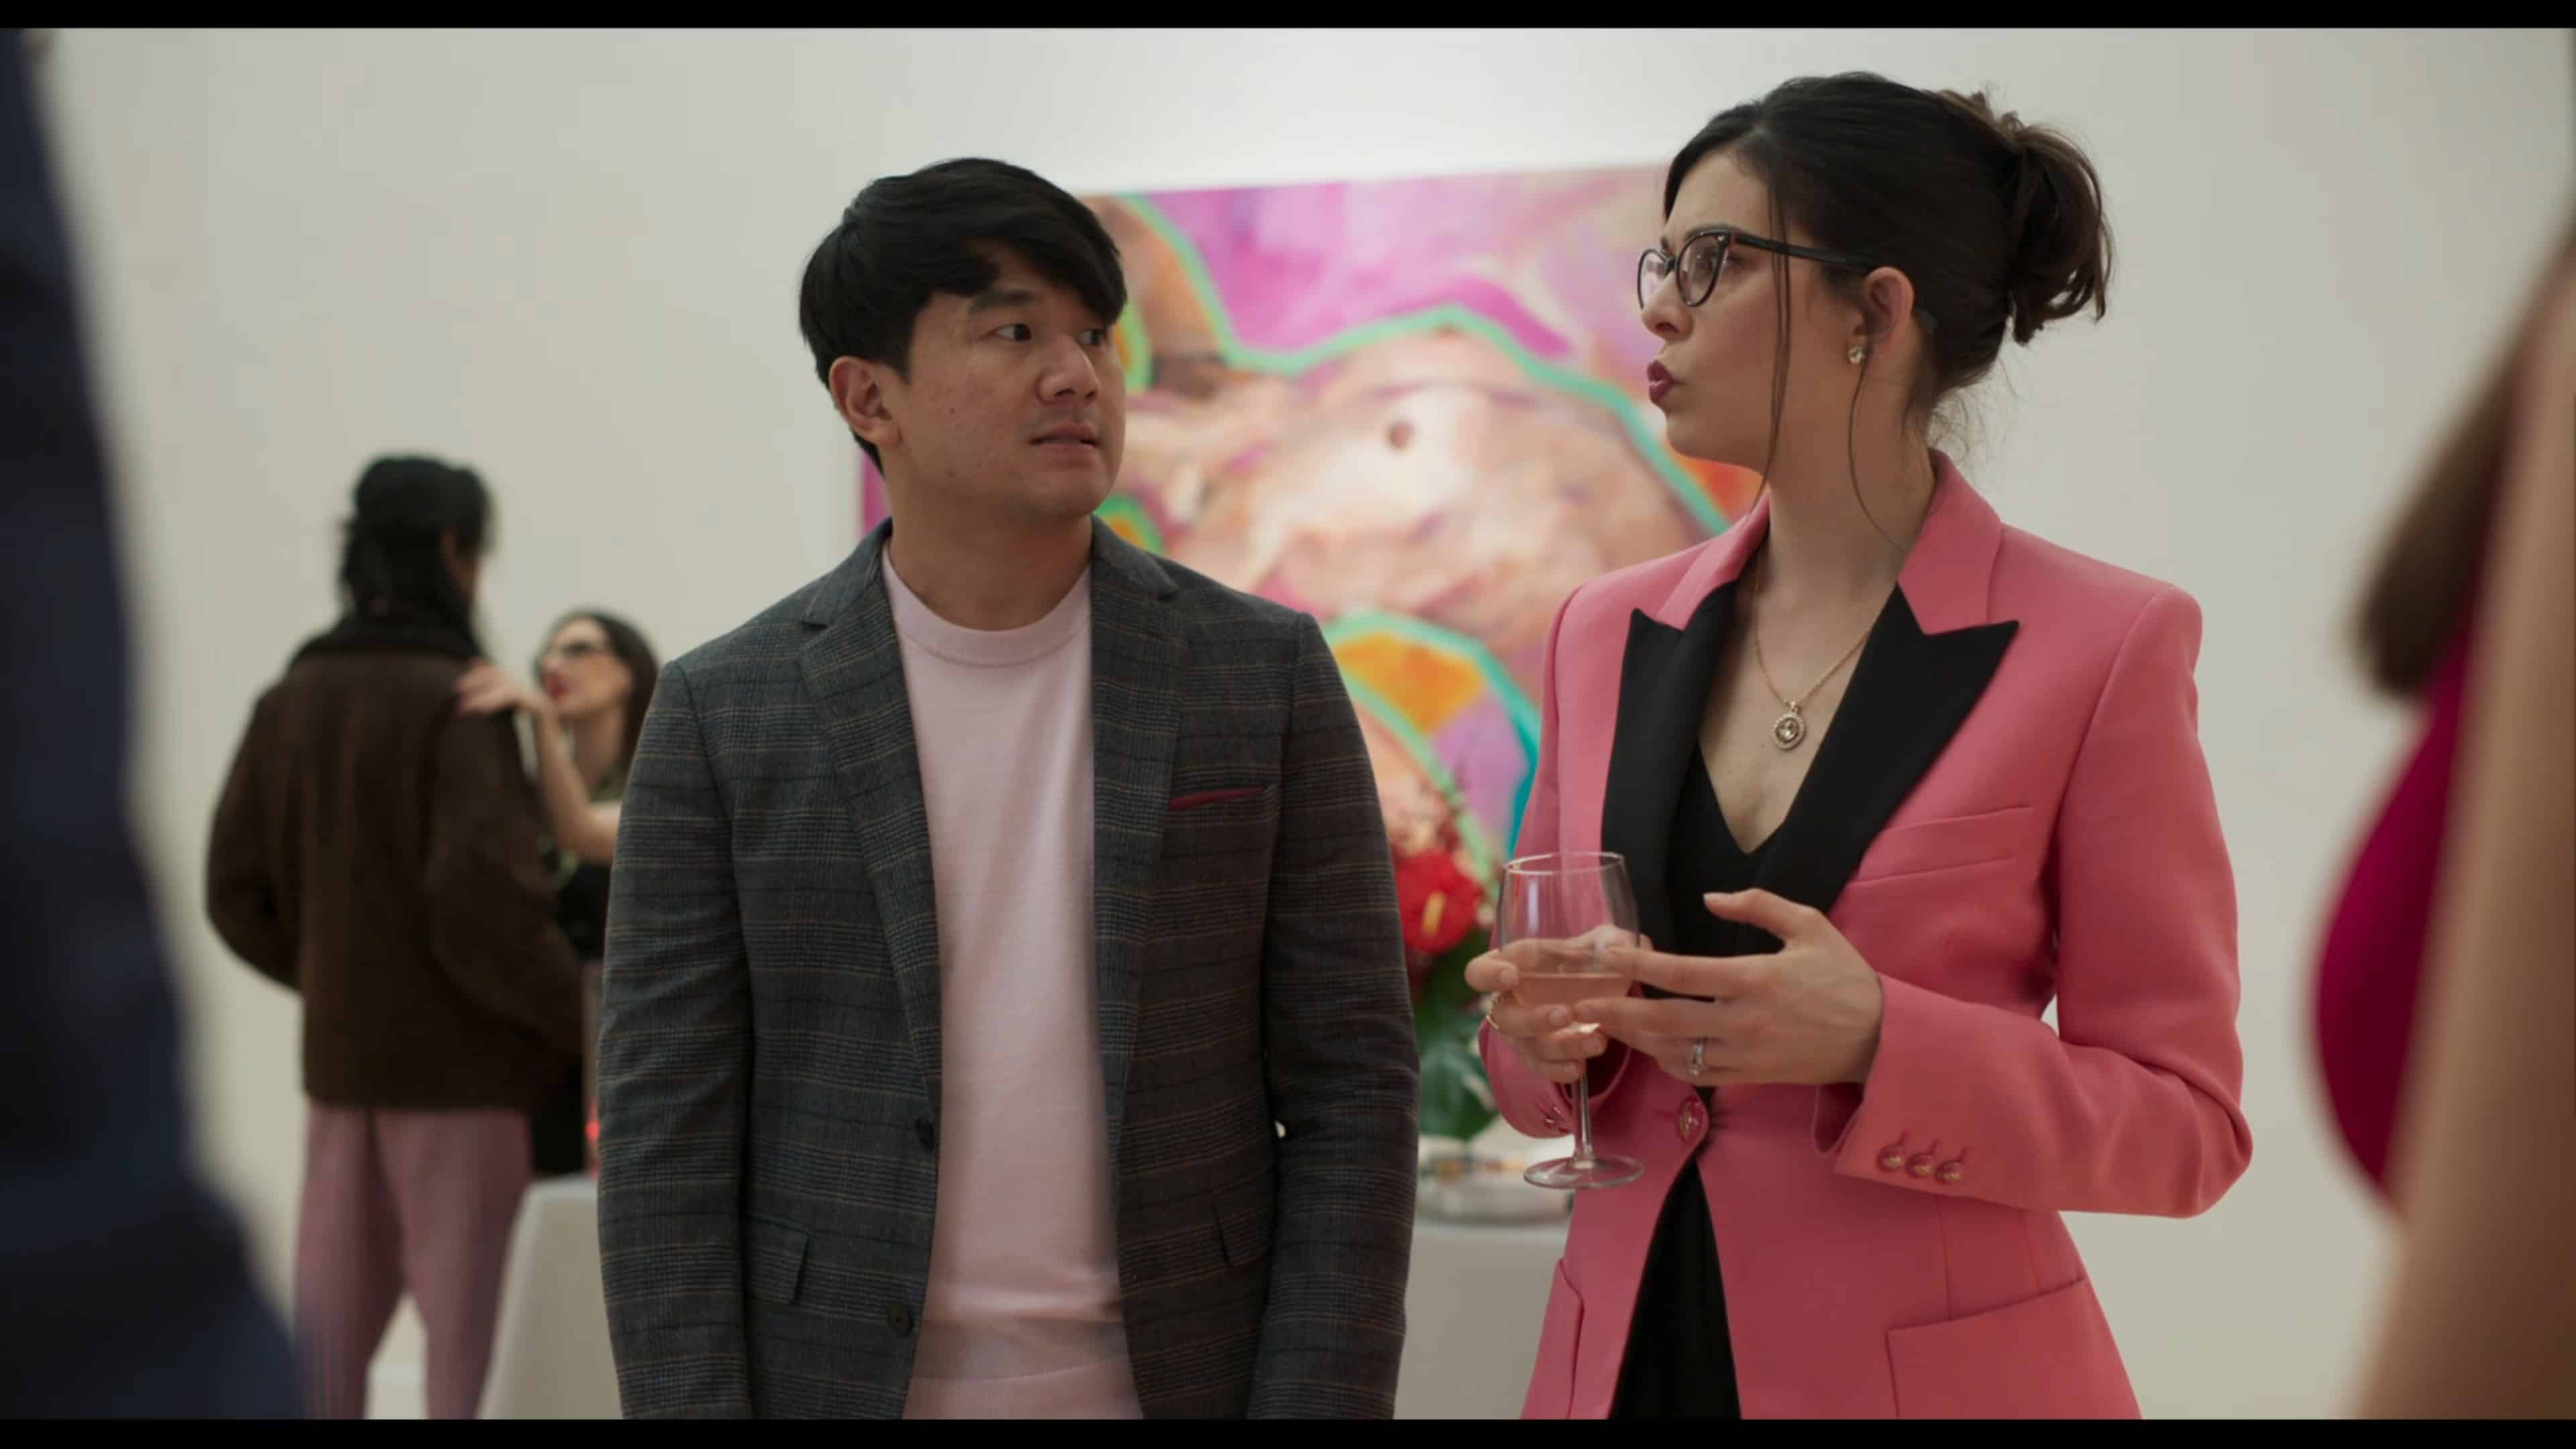 Adam (Ronny Chieng) and Eleanor (Lindsey Broad) at Brooke's gallery opening